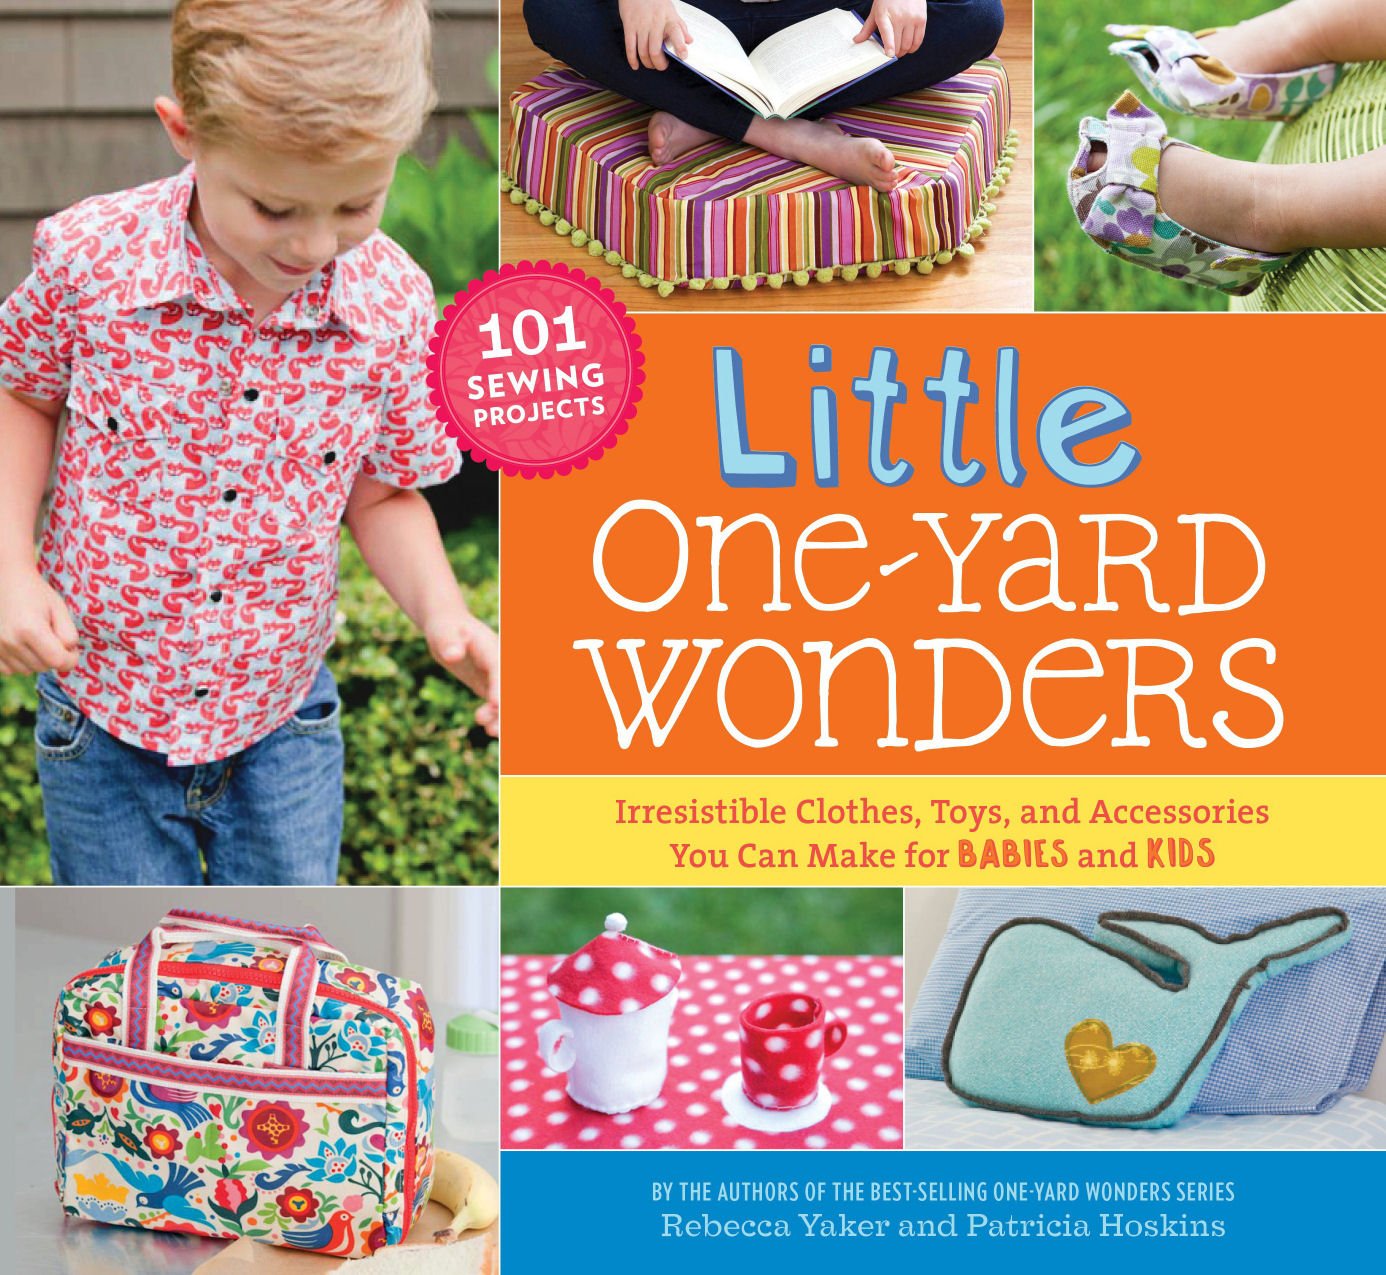 Little One-Yard Wonders- book review